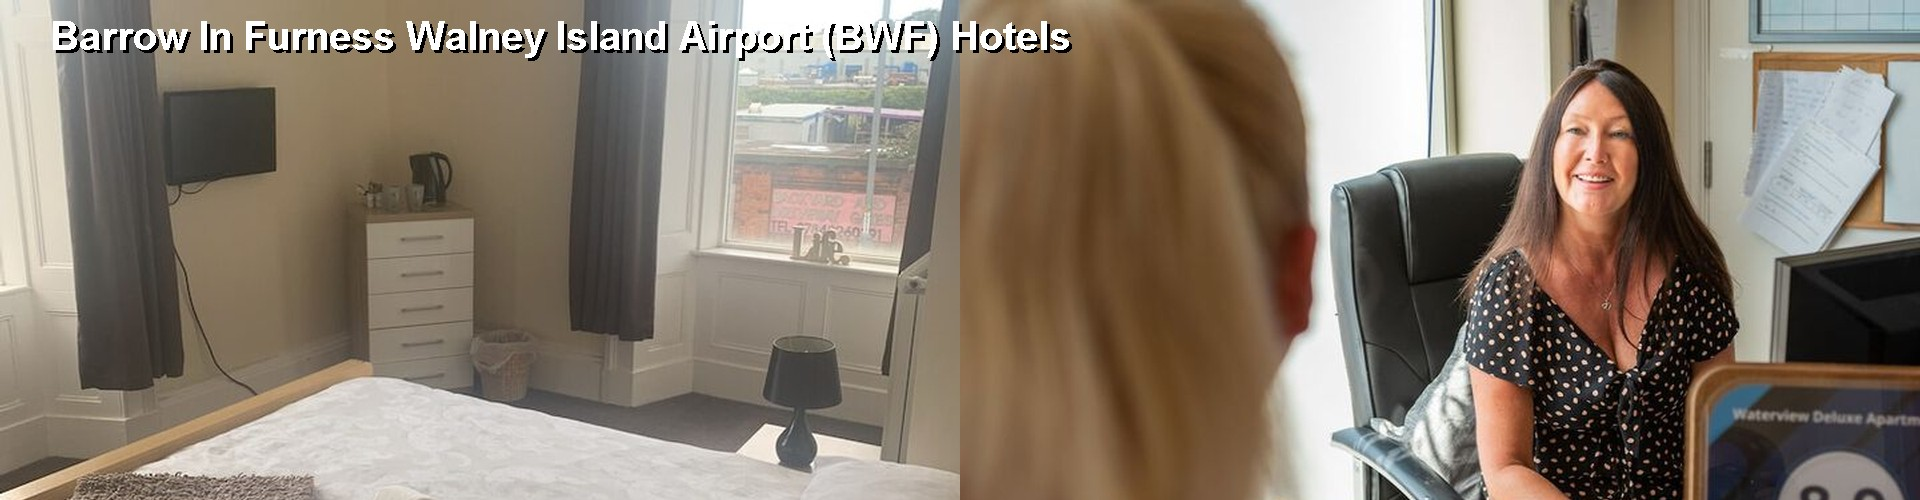 2 Best Hotels near Barrow In Furness Walney Island Airport (BWF)